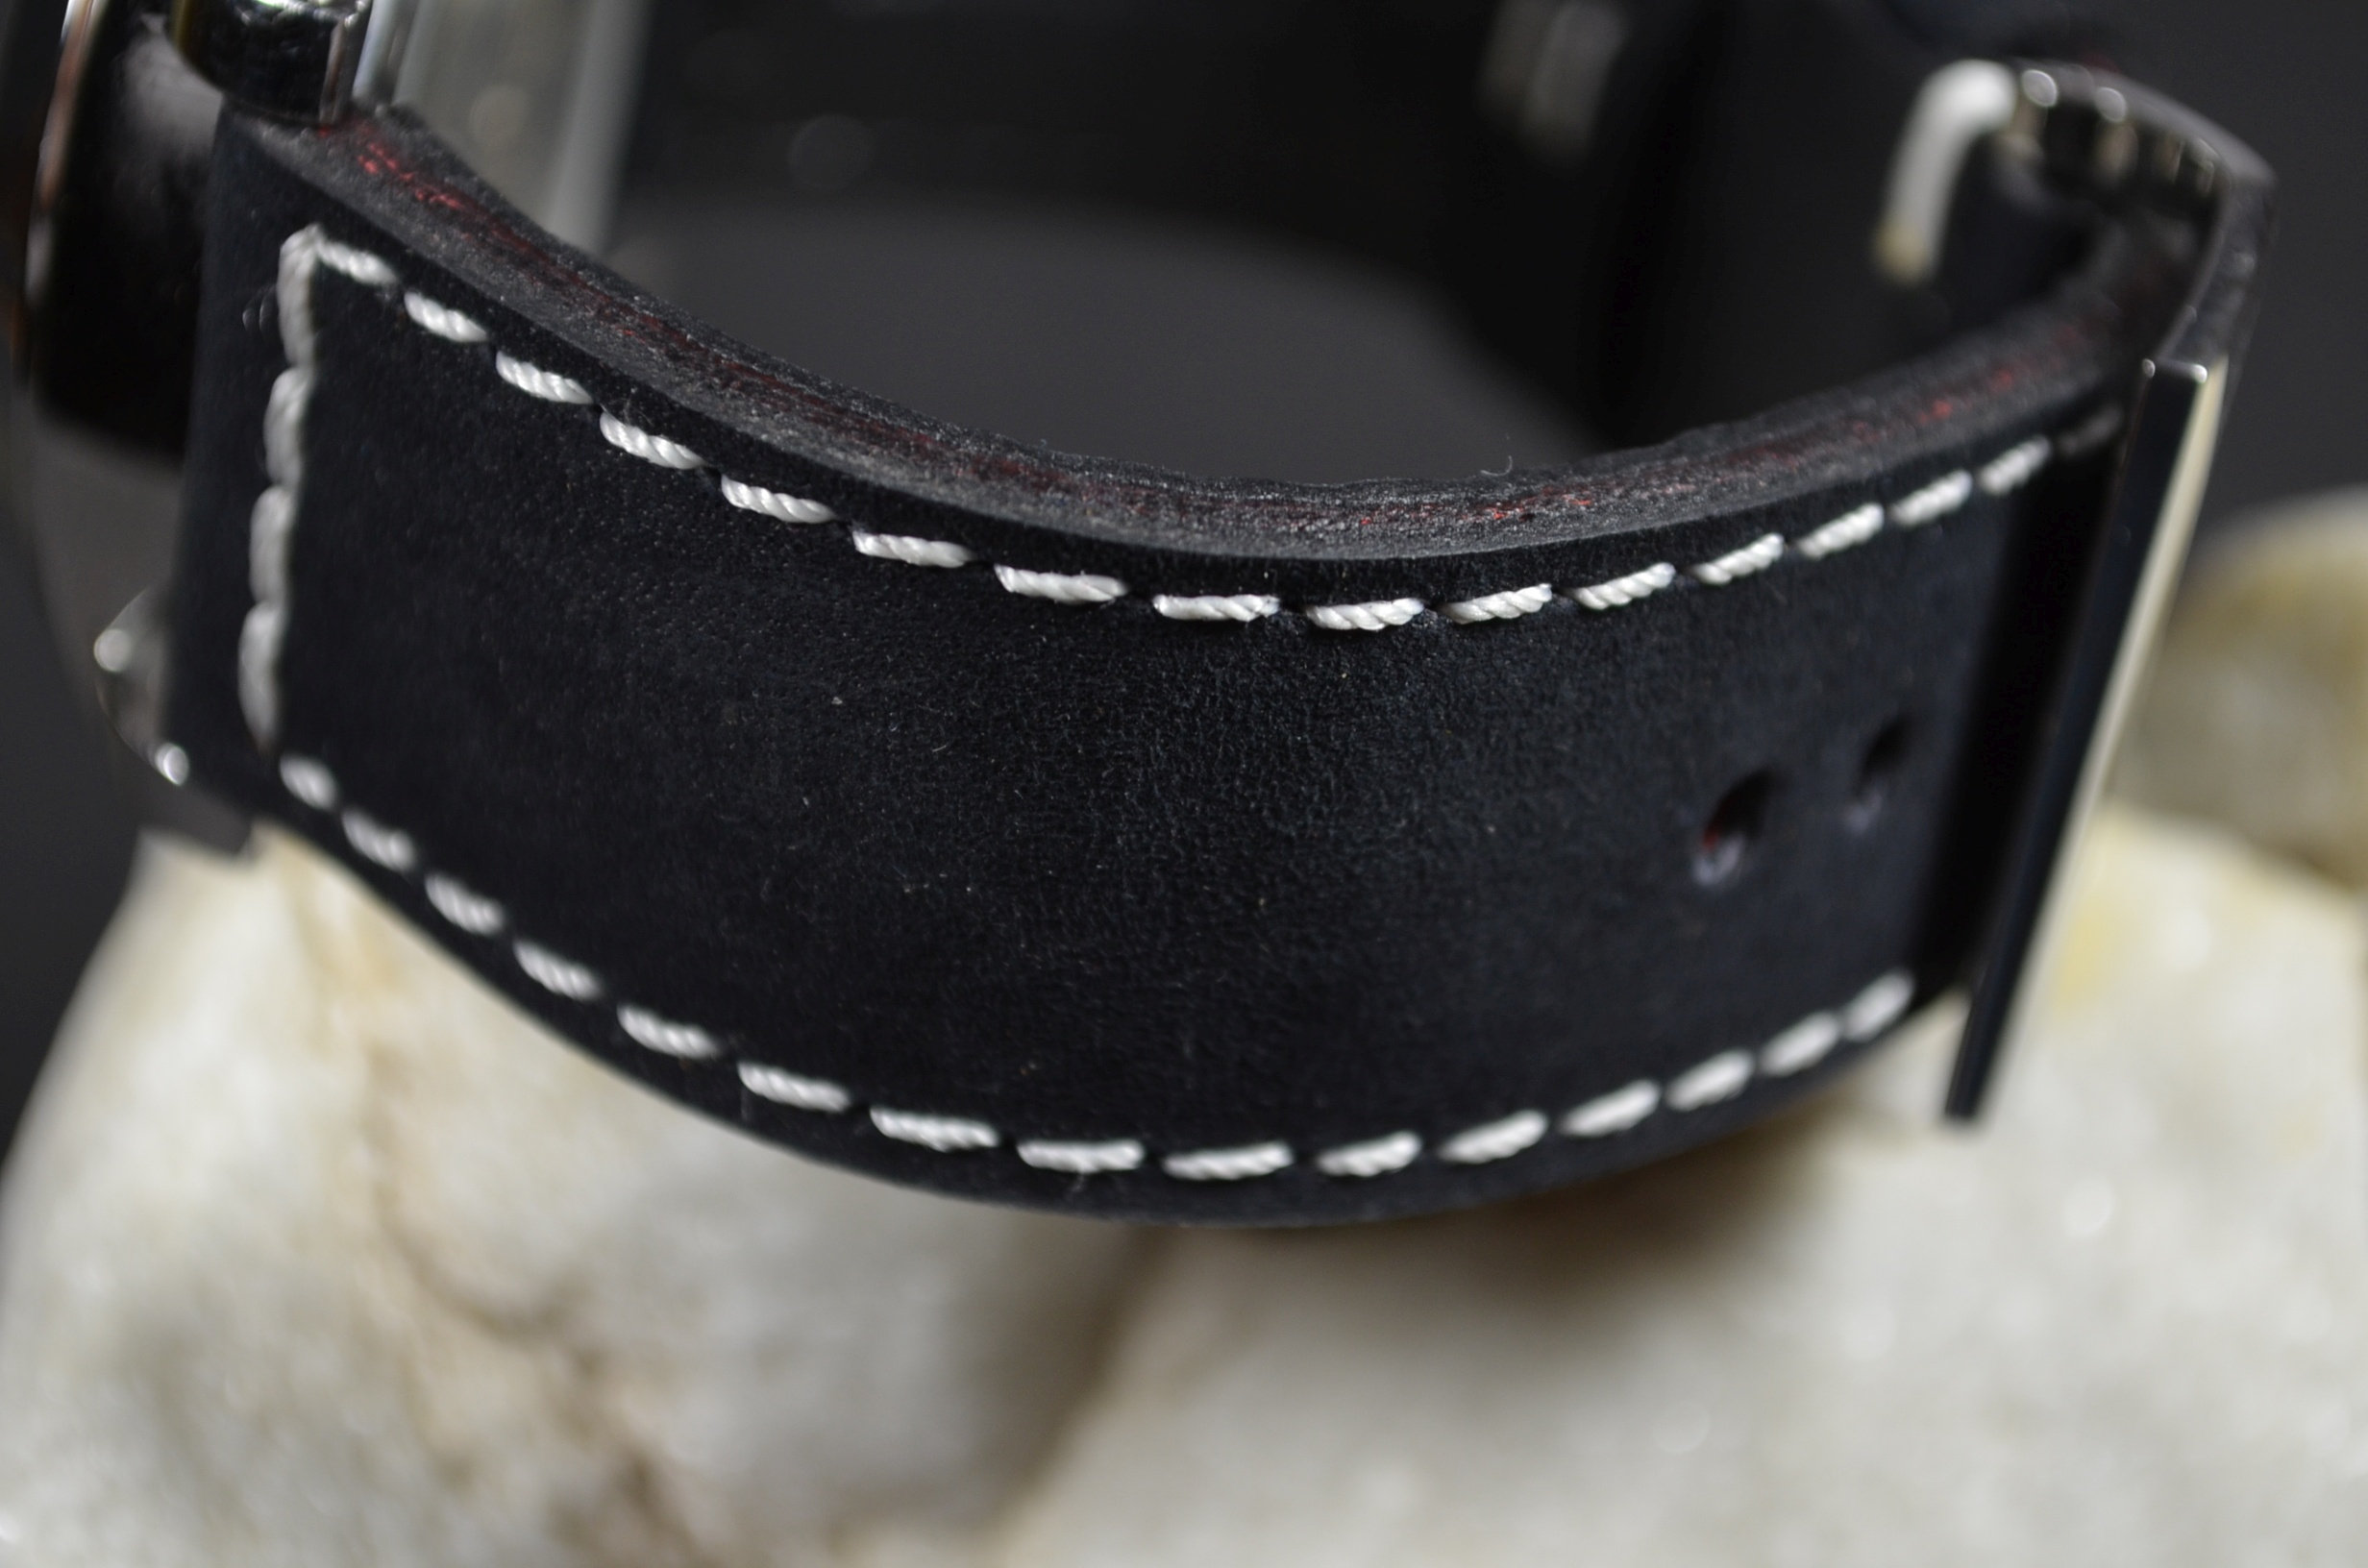 BLACK II is one of our hand crafted watch straps. Available in black color, 4 - 4.5 mm thick.